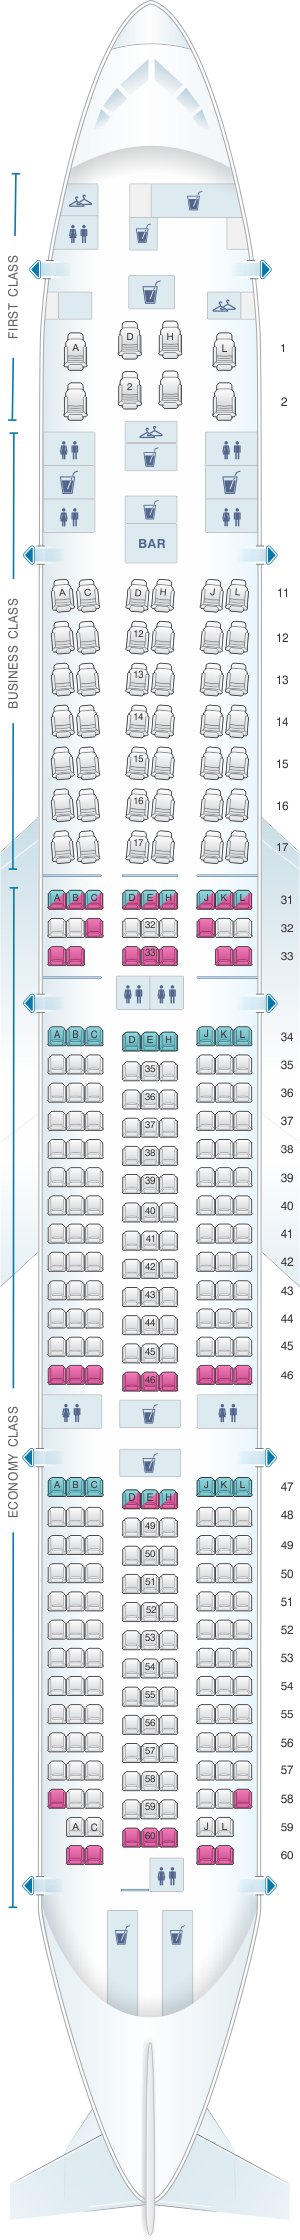 Seat map for Air China Boeing B777 300ER